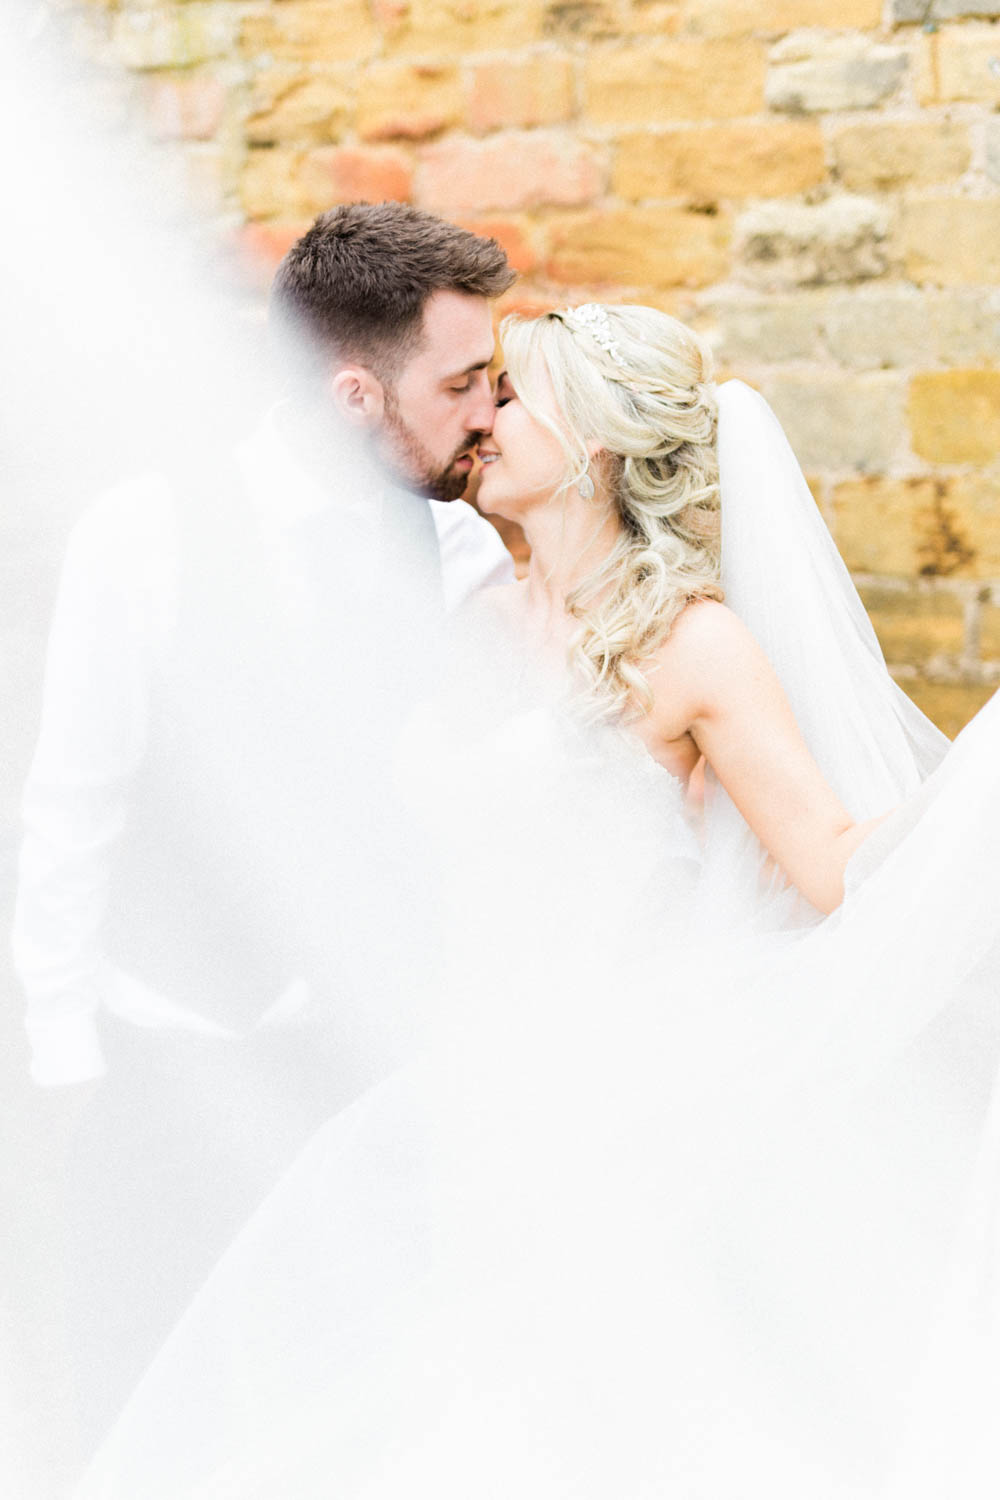 Special-Day-Photography-The-Manor-House-Hotel-Moreton-in-Marsh-Moreton-In-Marsh-Summer-Wedding-A-veil-covers-the-bride-and-groom-in-a-portrait-photo.jpg